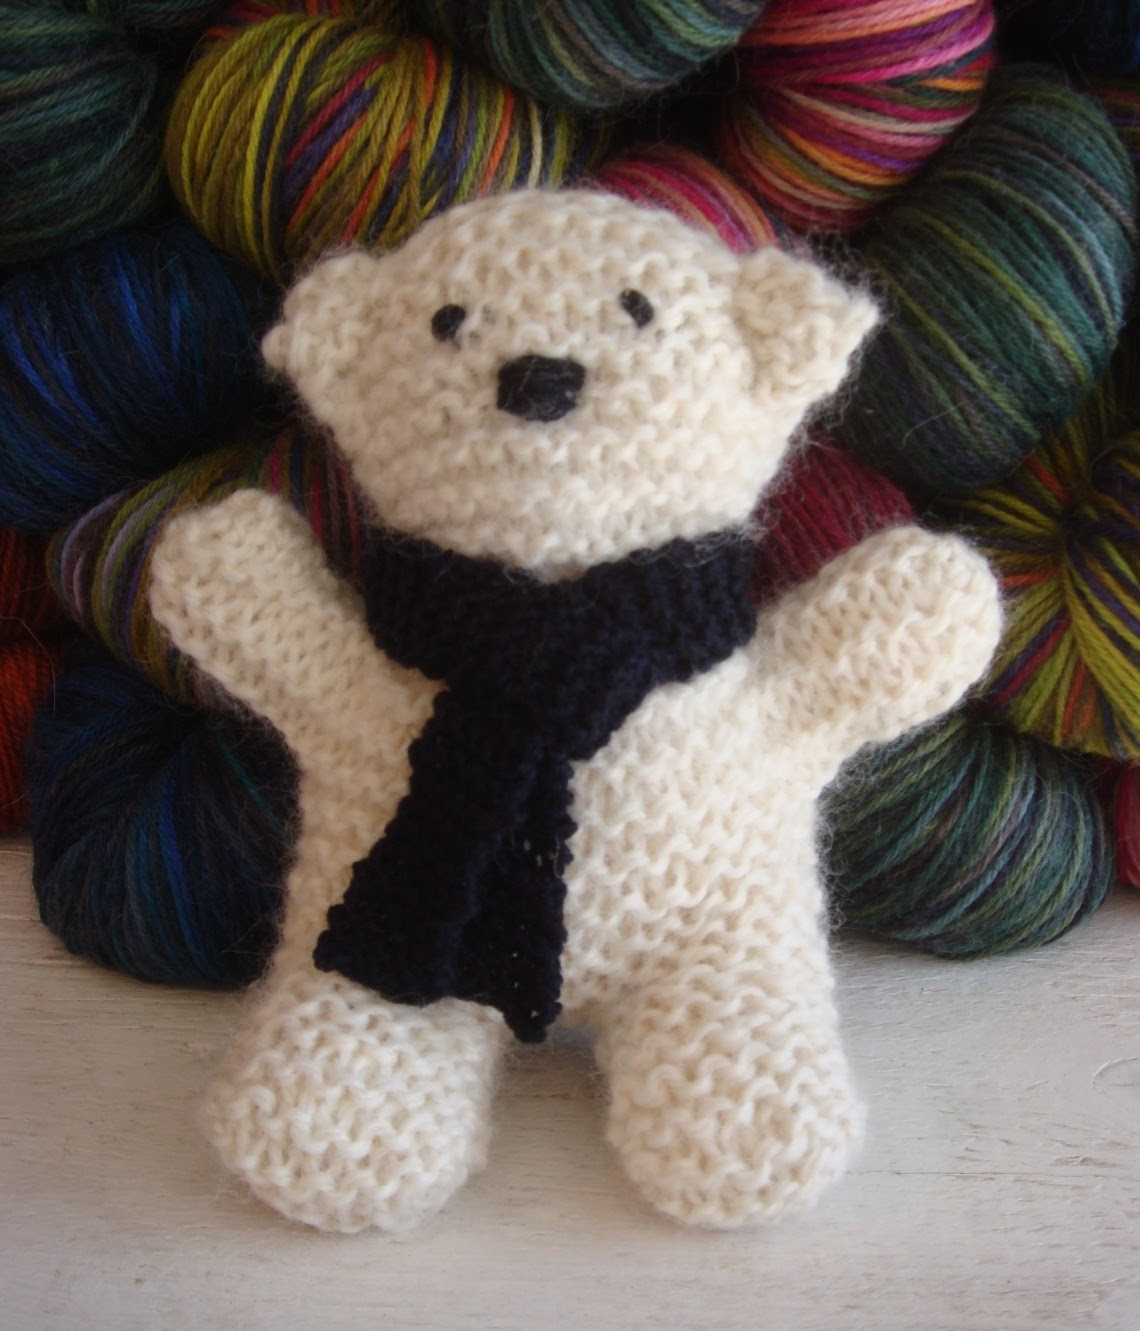 Best Of Kate atherley Knits A Lot Mainly socks Fo & Pattern C Knitted Bear Pattern Of Brilliant 42 Photos Knitted Bear Pattern